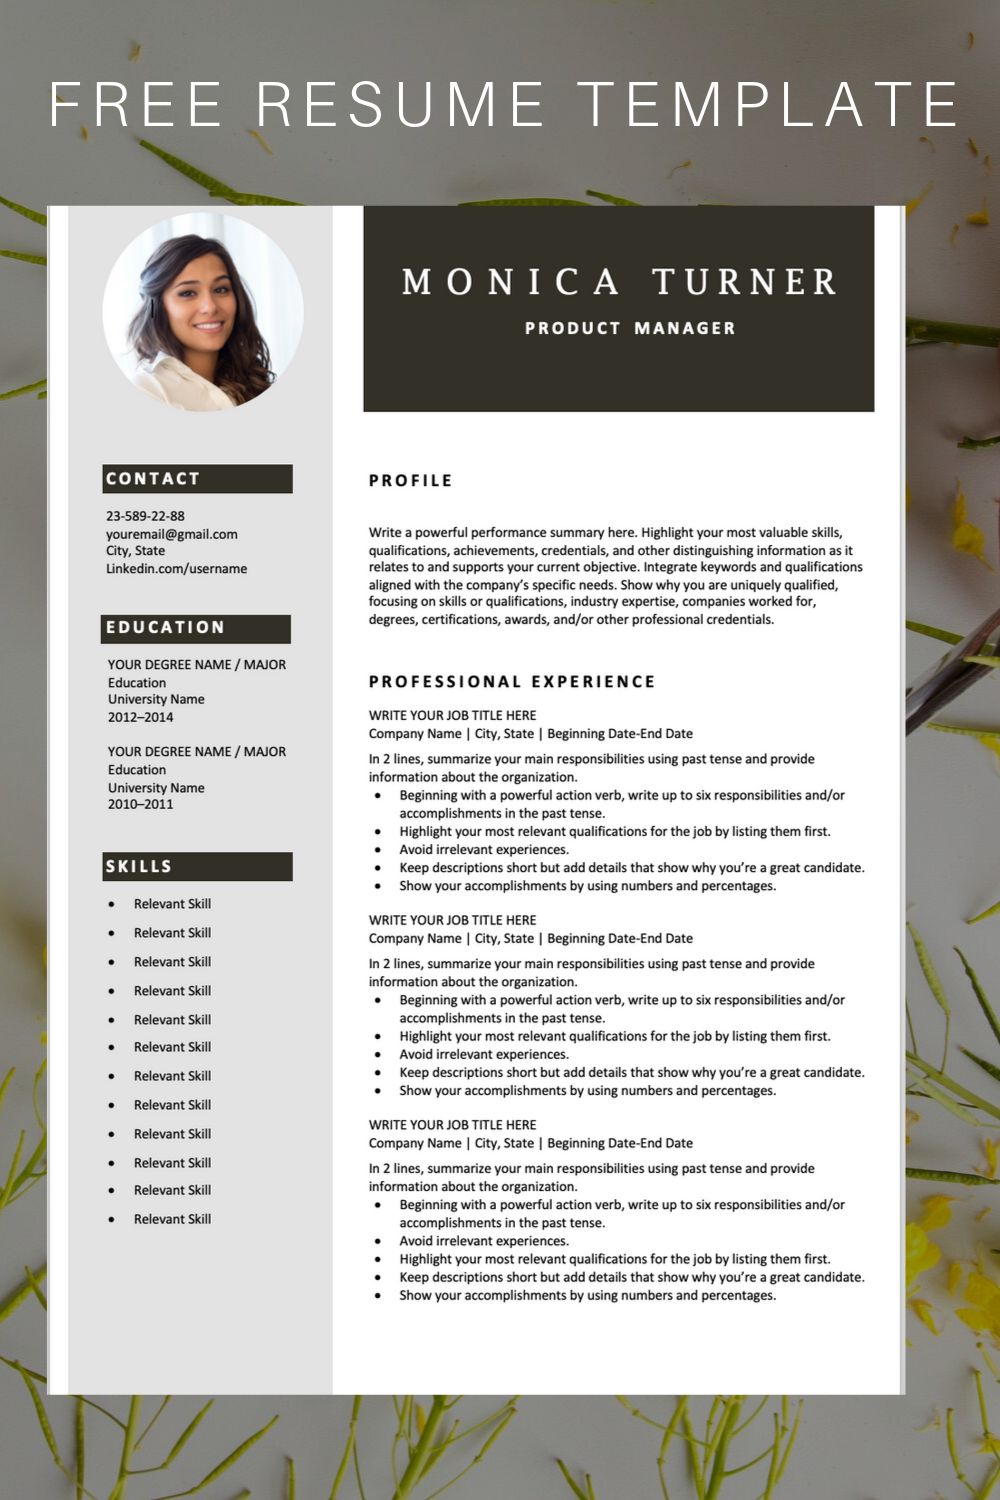 Download this professional resume template. You can easily ...